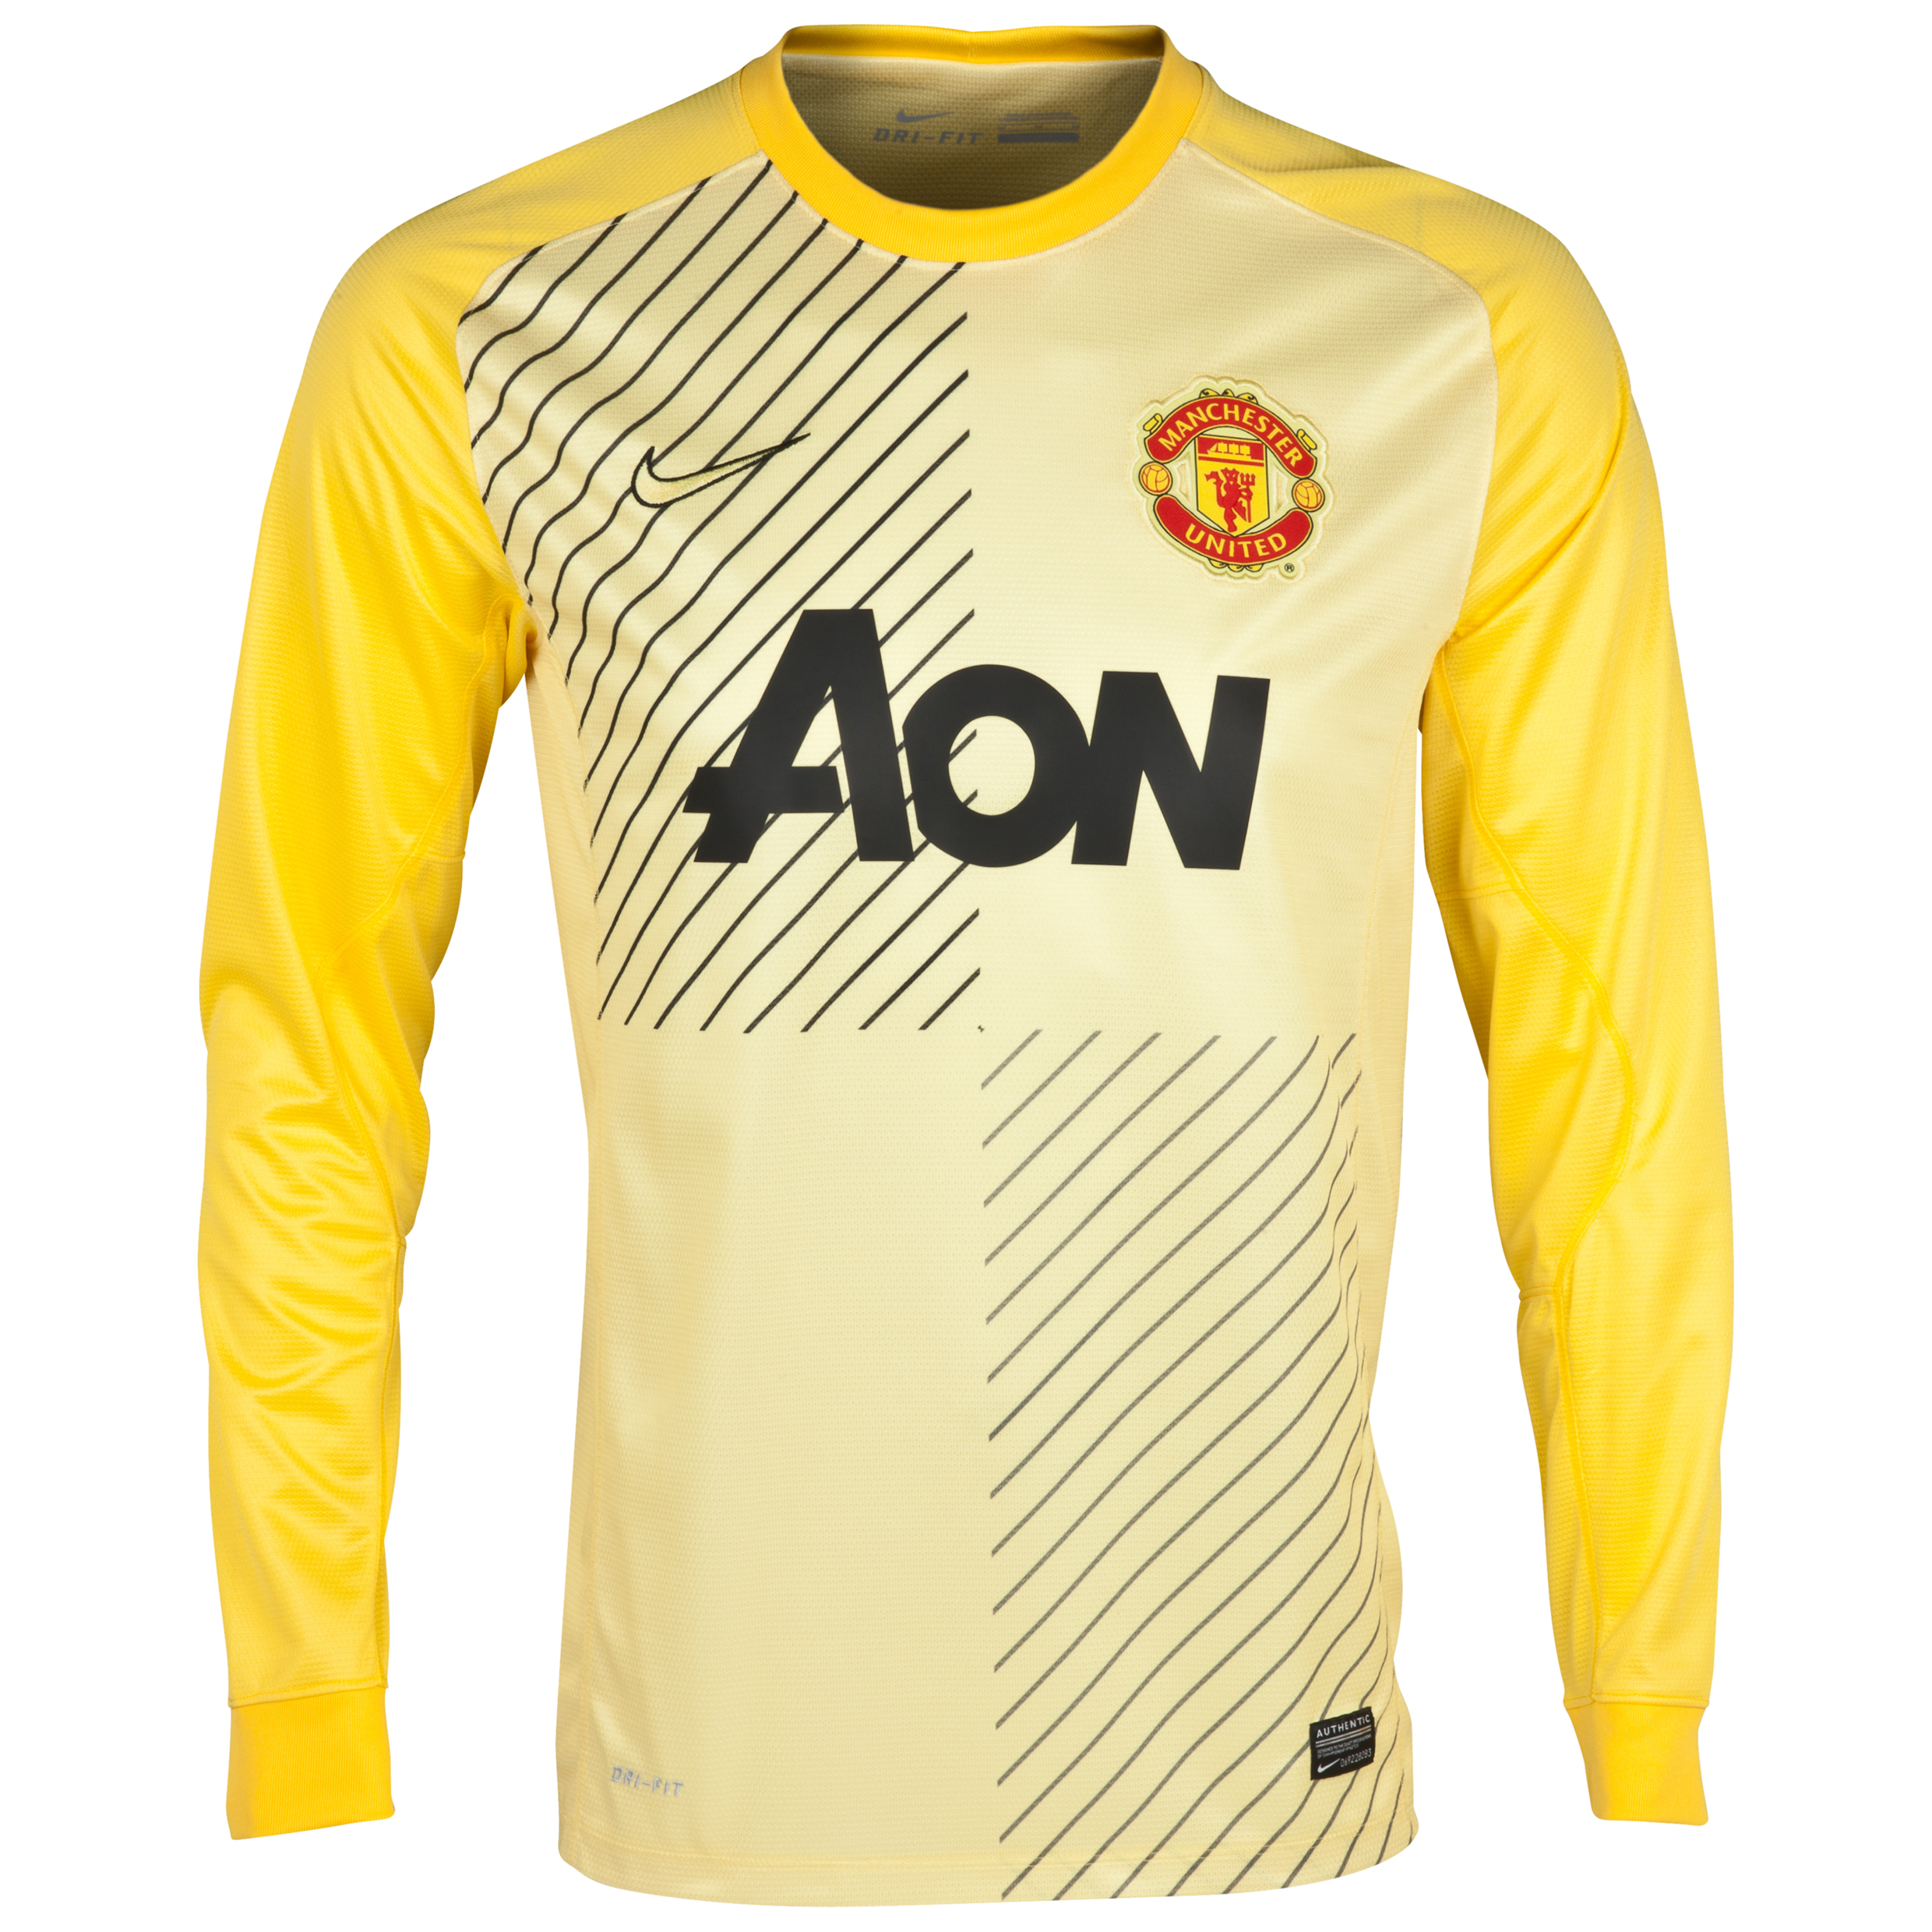 Manchester United Change Goalkeeper Shirt 2013/14